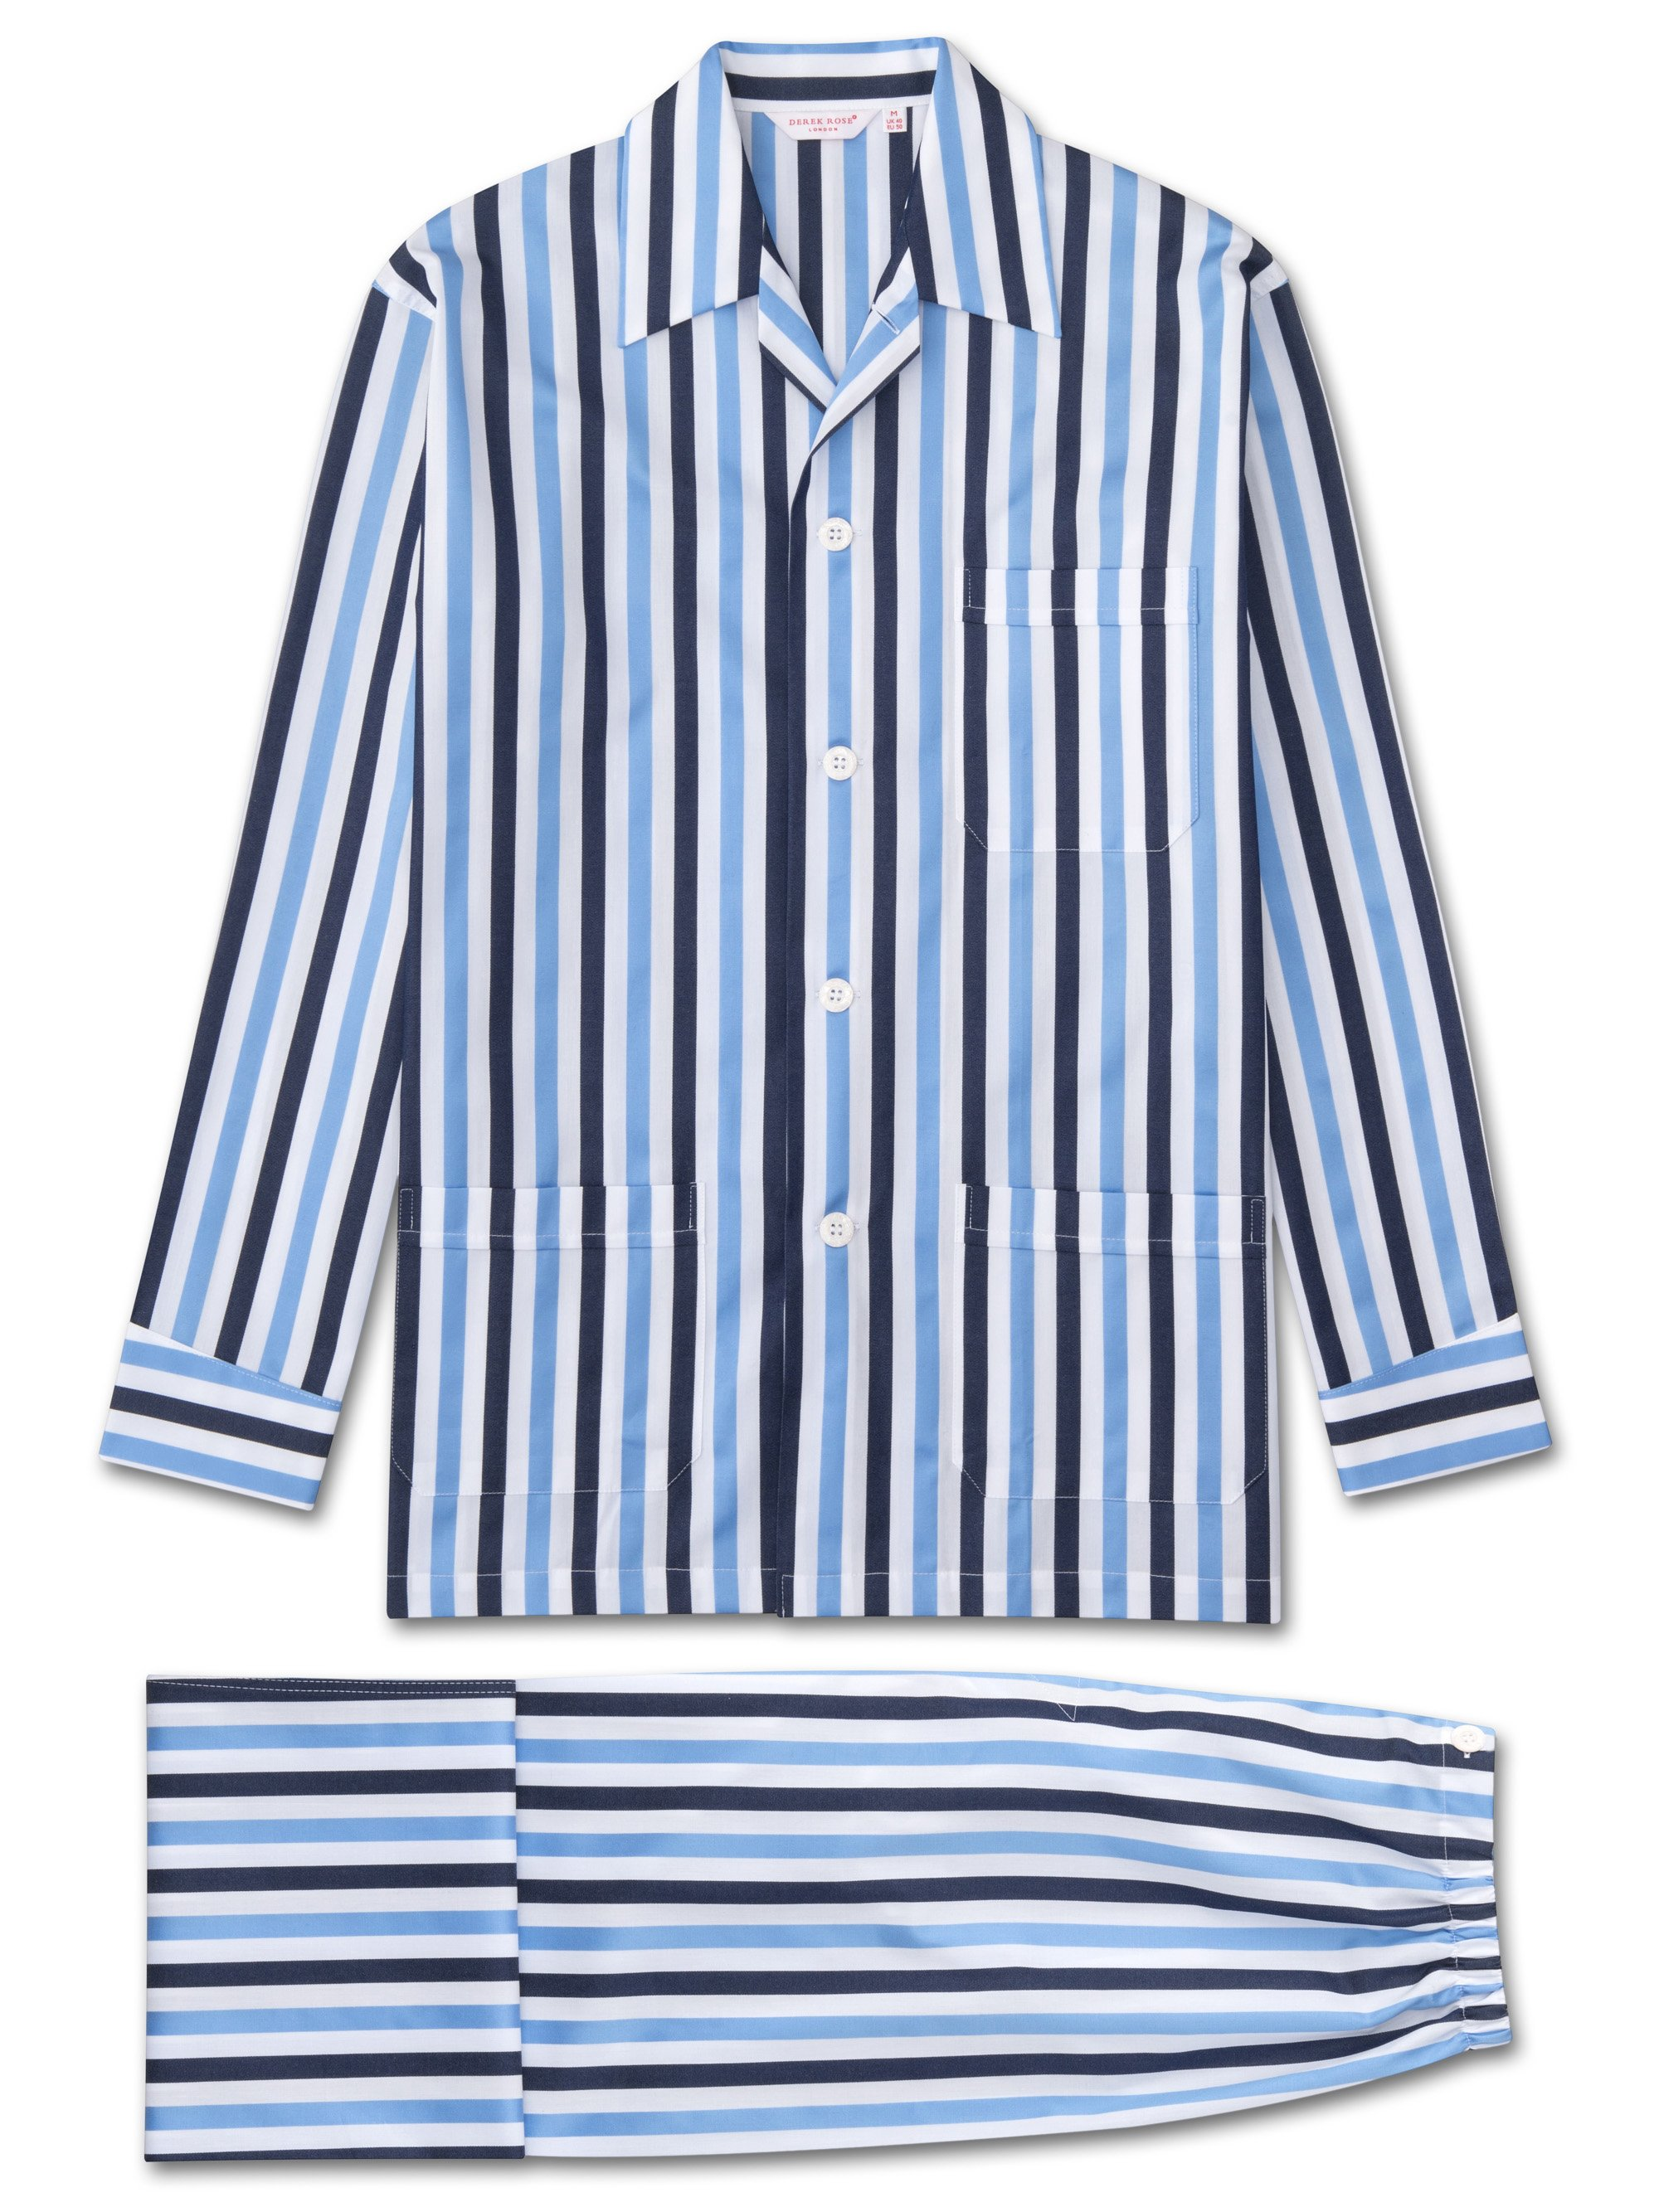 Men's Classic Fit Pyjamas Windsor 40 Cotton Satin Stripe Blue